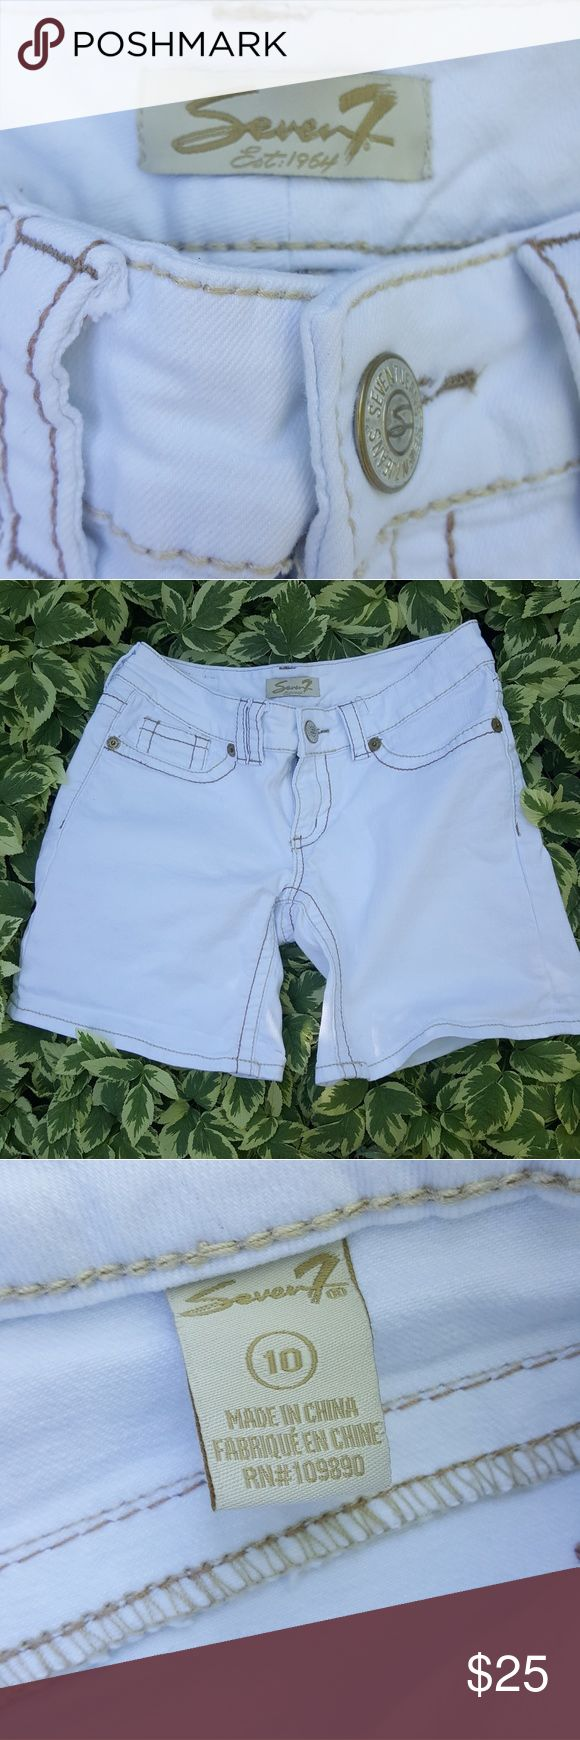 Seven white jean shorts, size 30 Like new, inseam approx 6 inches, not rolled up. Stretchy material, low cut and comfy!☺ No stains, bright white Shorts Jean Shorts